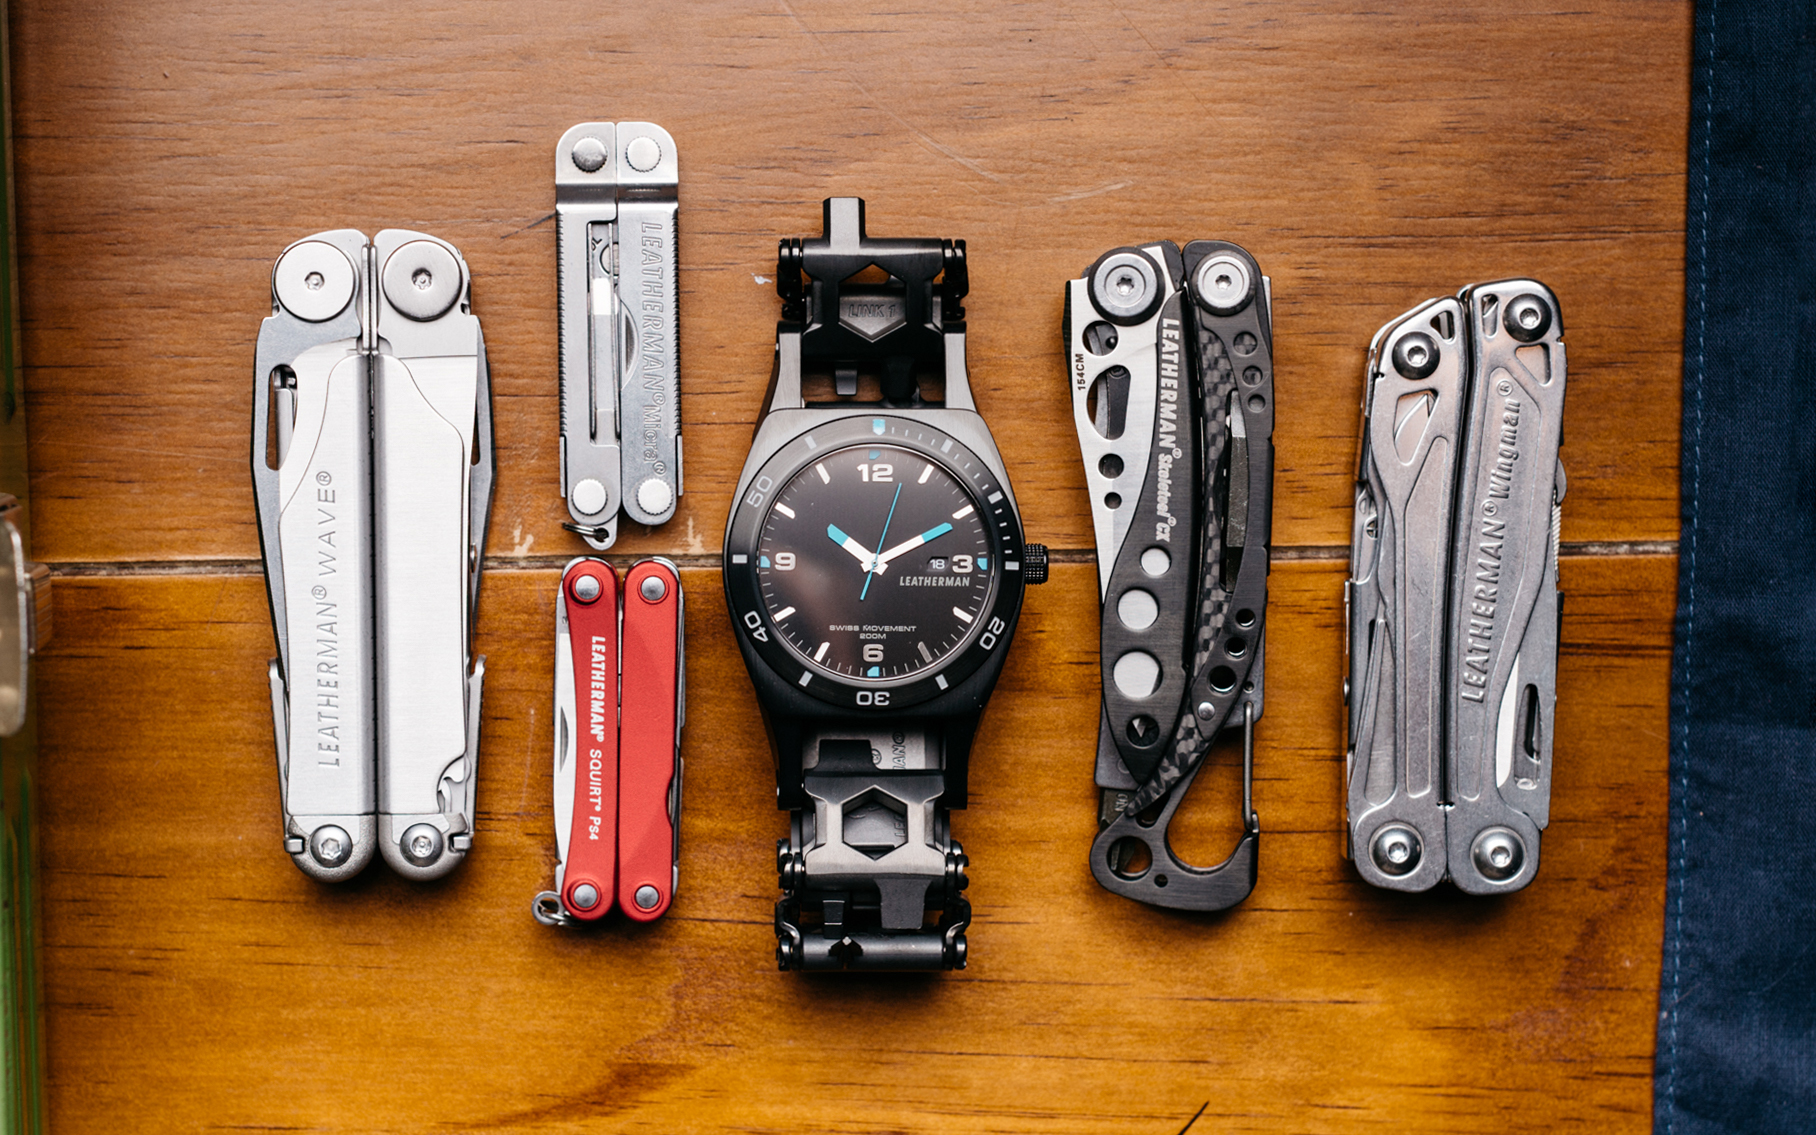 The Best Leatherman Multi-tools for EDC